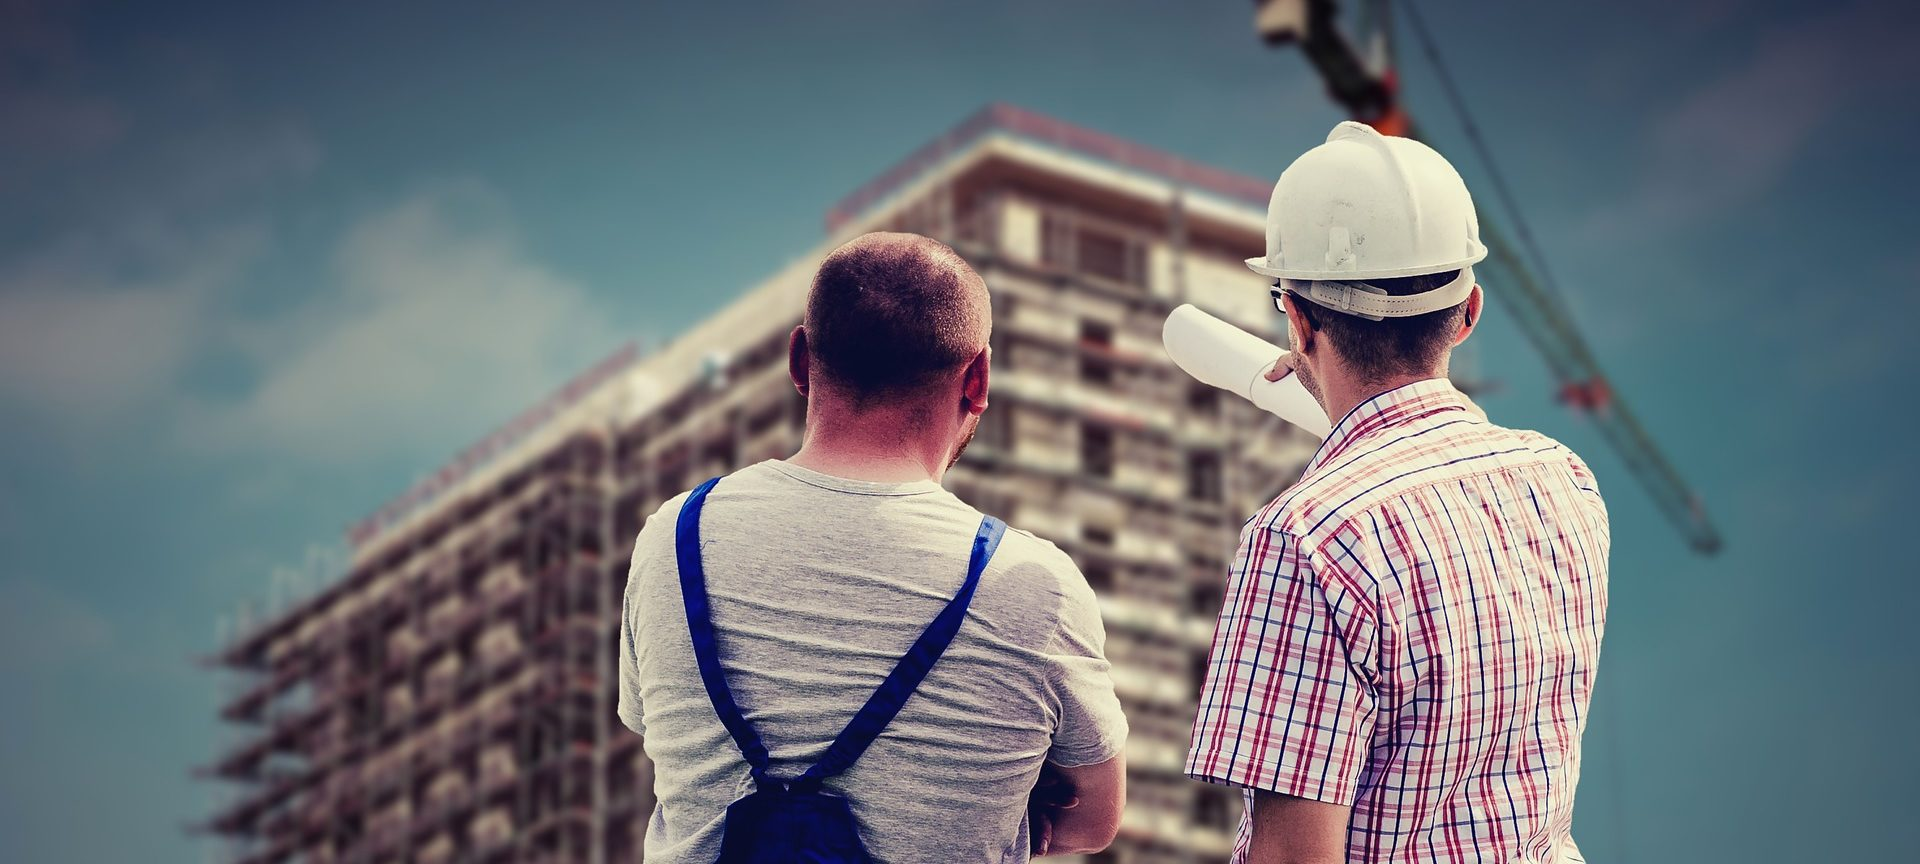 A guide on how to write bids and tenders for builders, plumbers, electricians and other tradespeople